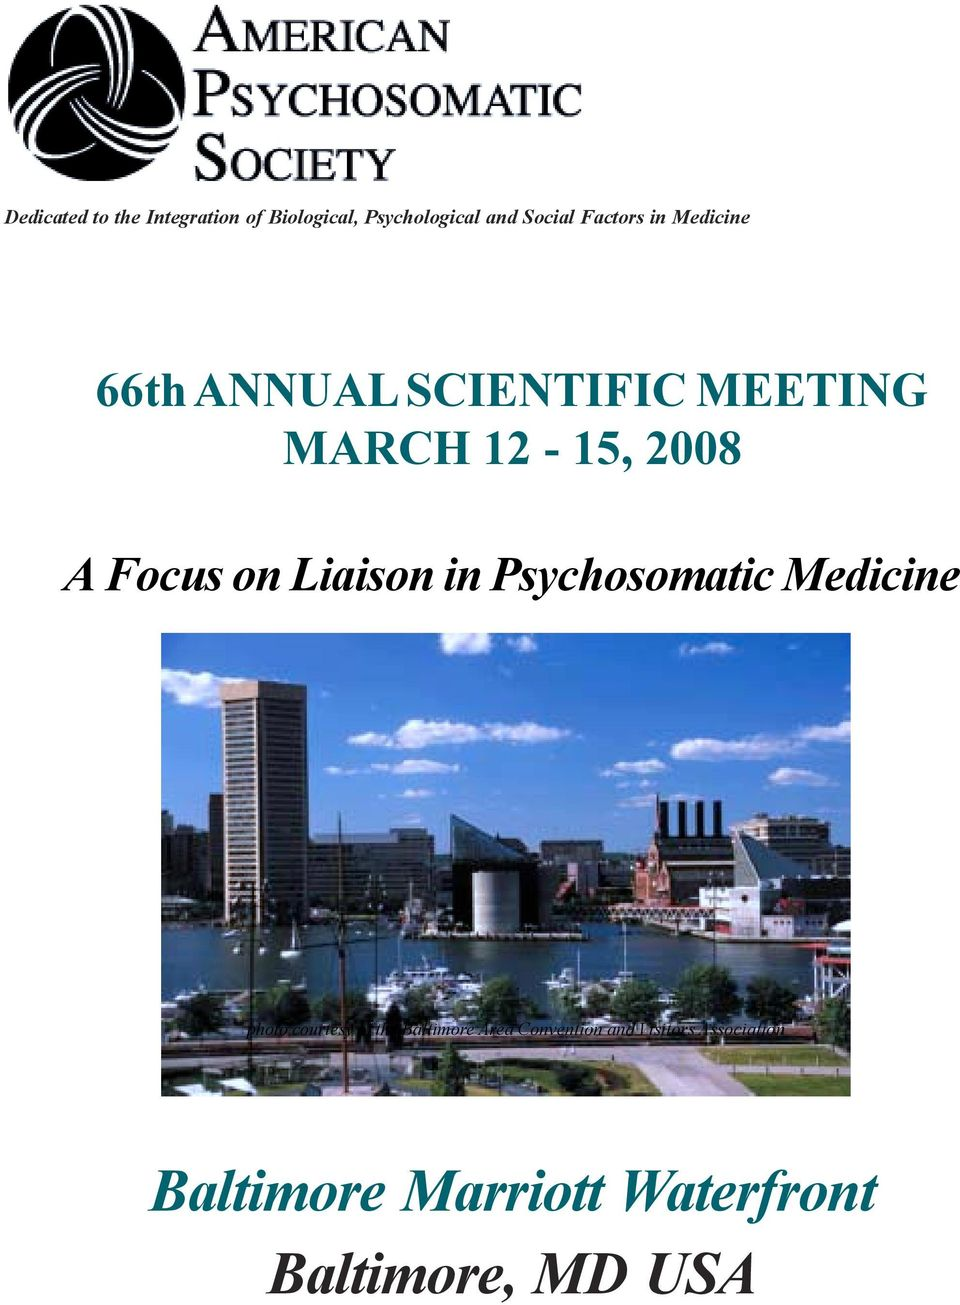 Focus on Liaison in Psychosomatic Medicine photo courtesy of the Baltimore